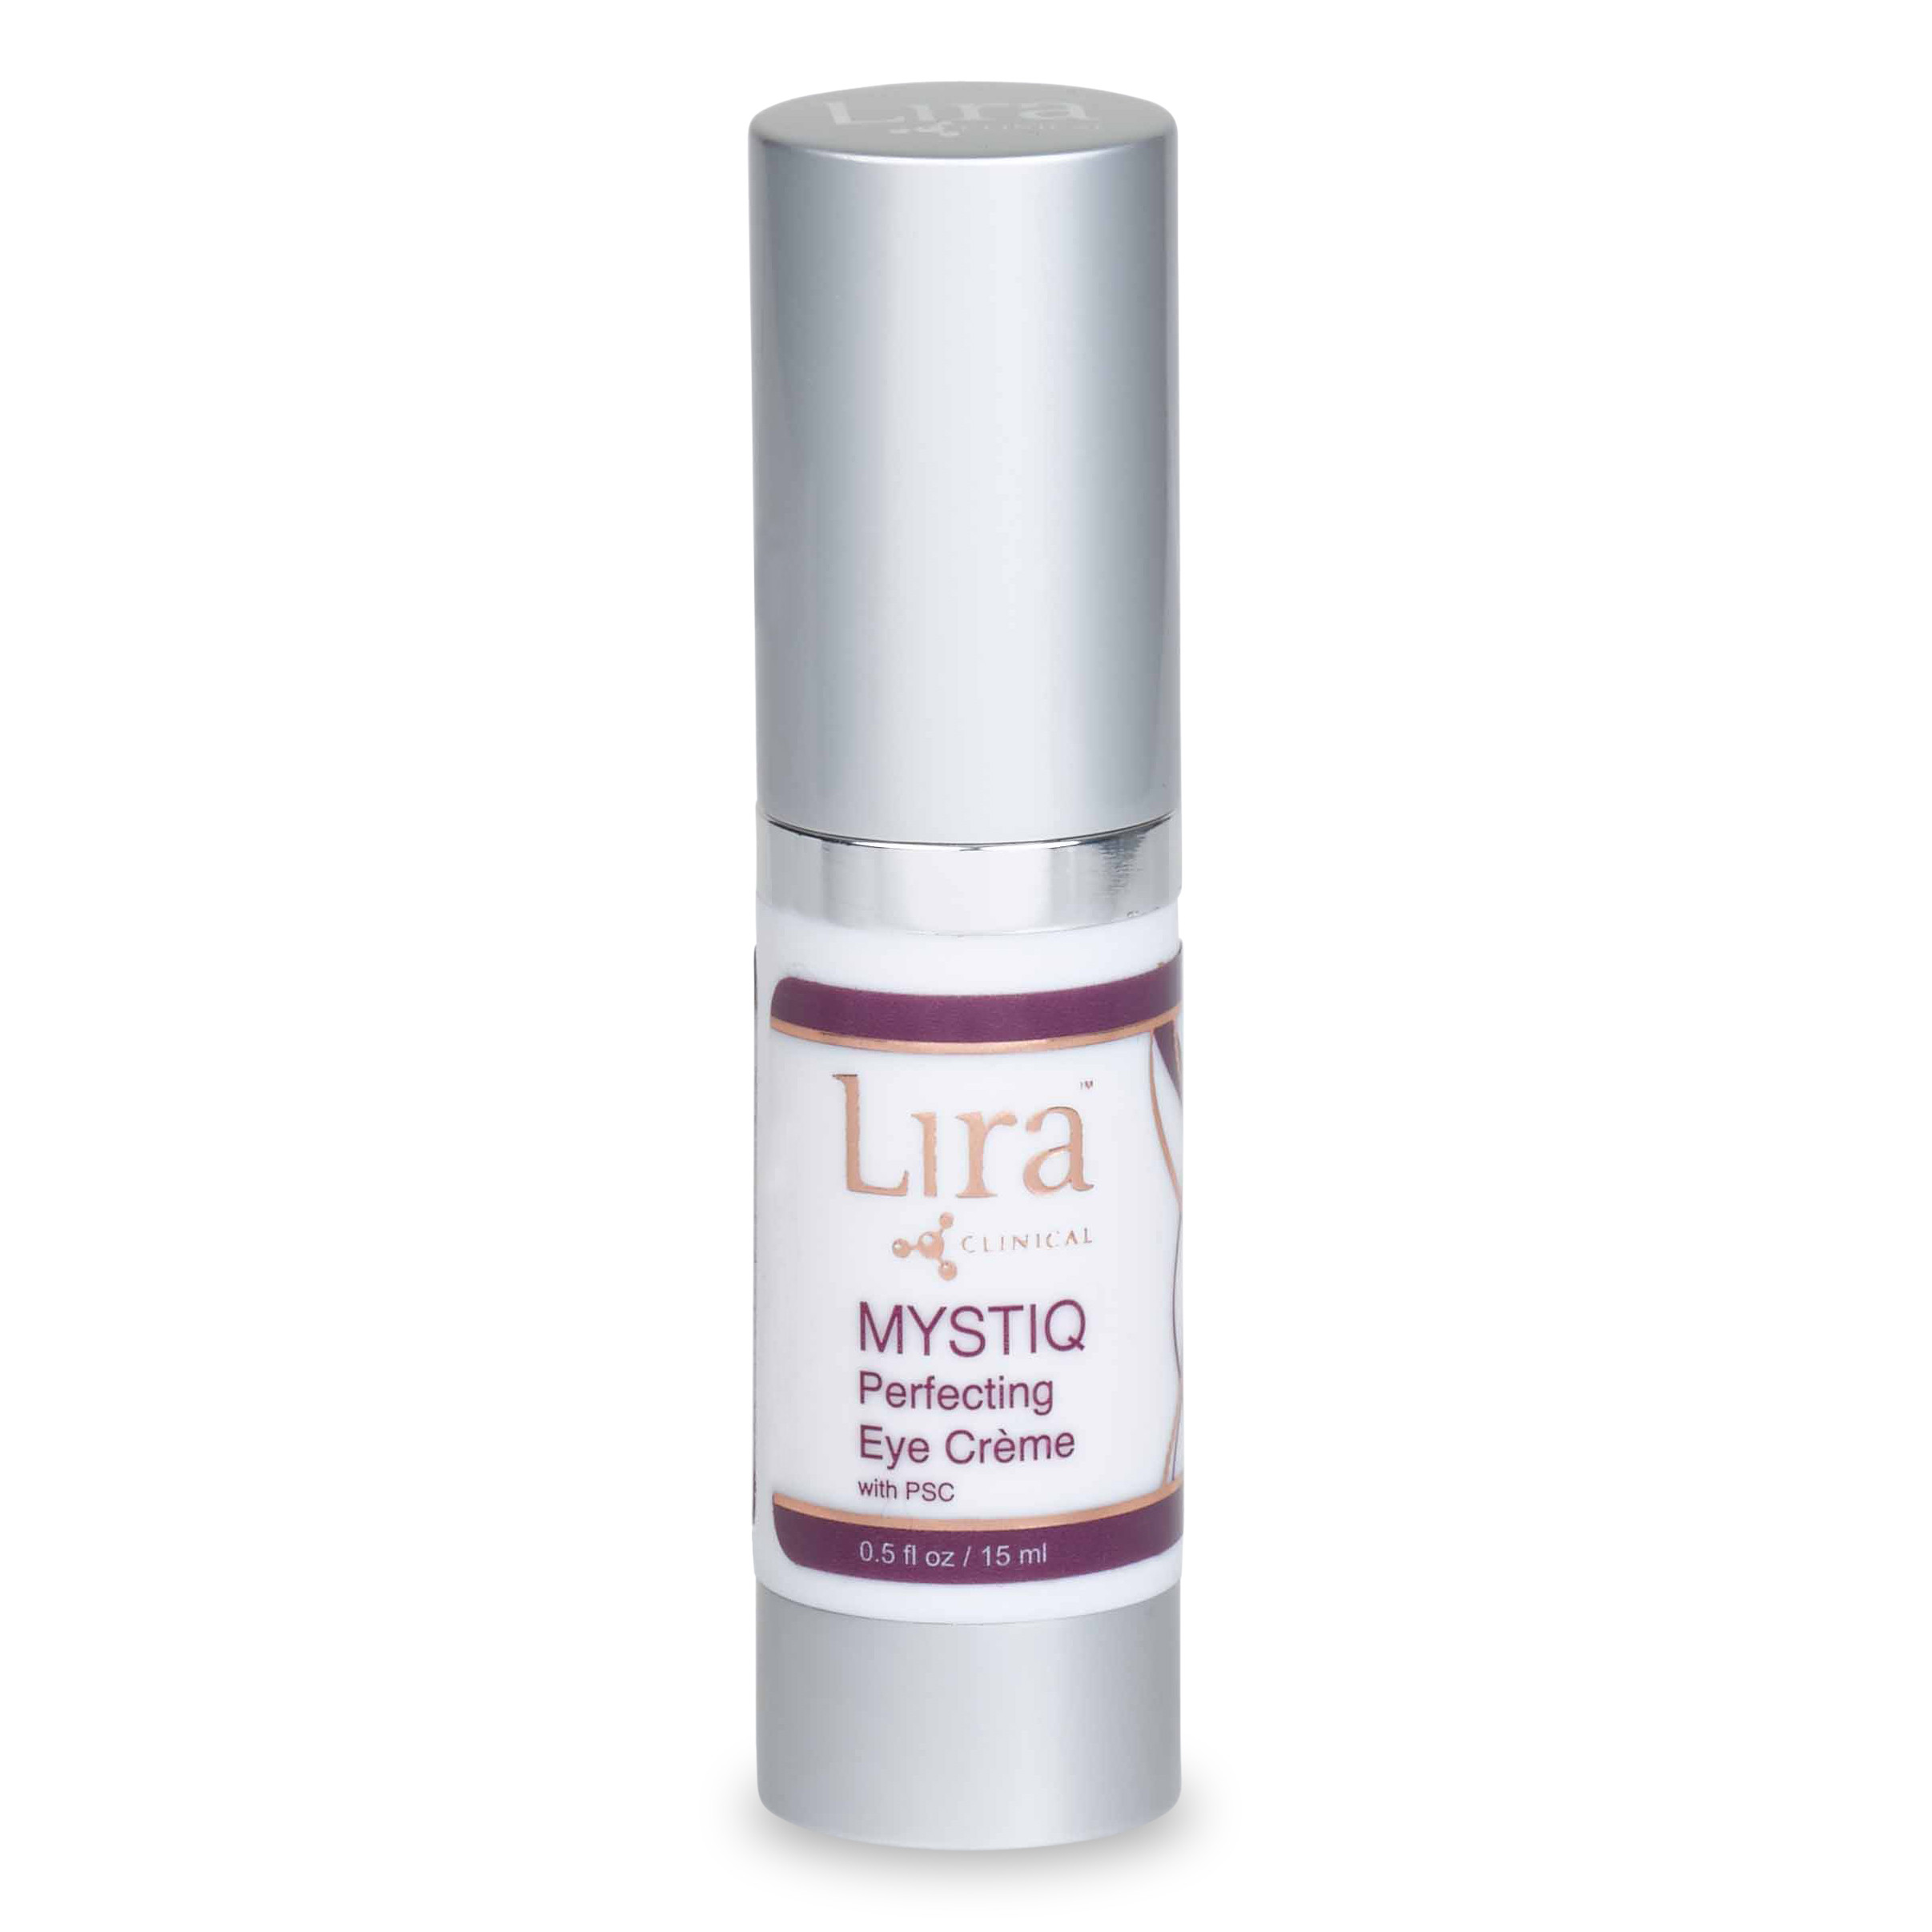 Lira MYSTIQ Perfecting Eye Creme